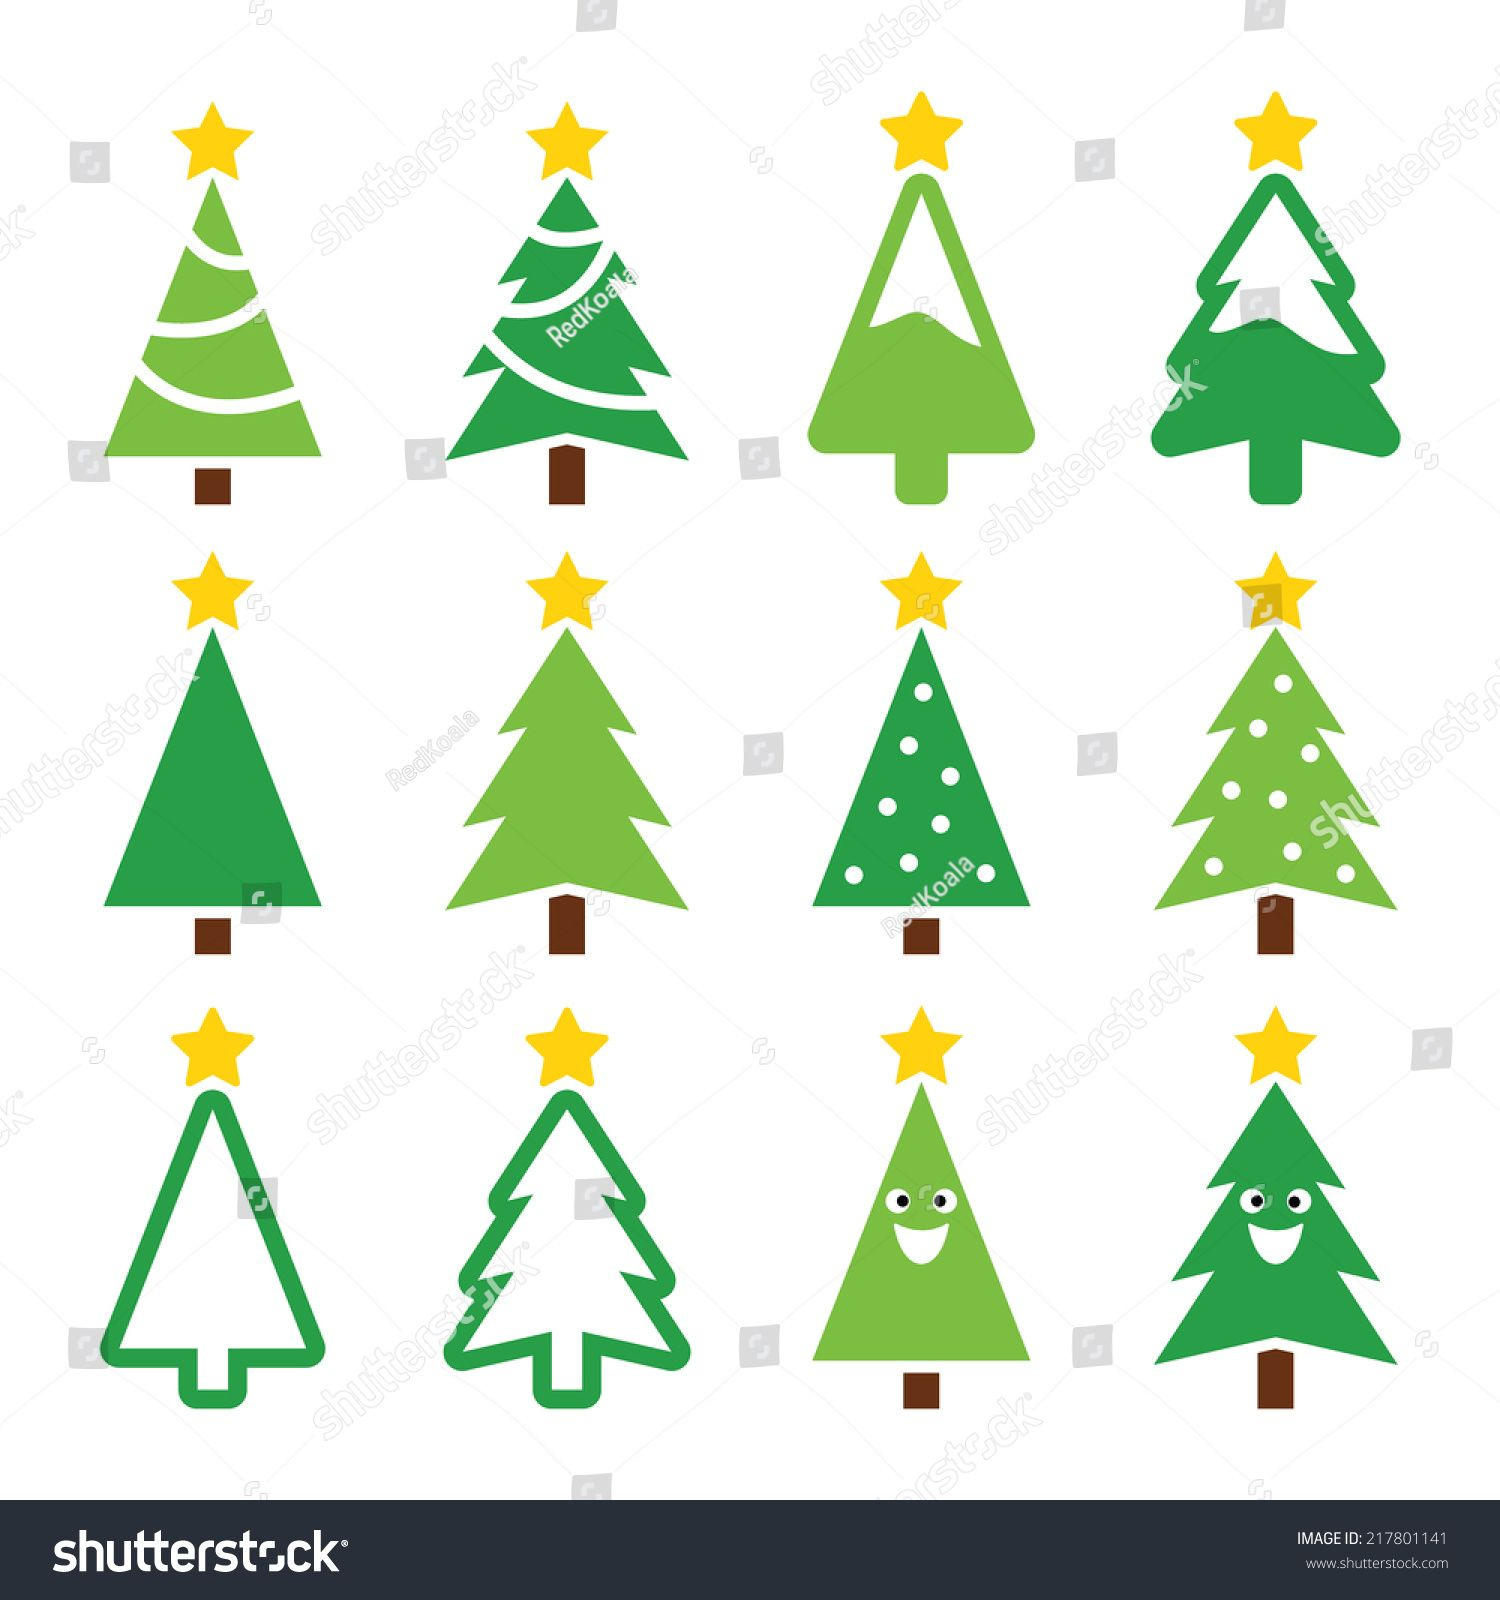 Christmas Green Tree With Star Vector Icons Set Christmas Vectors Vector Icons Green Trees